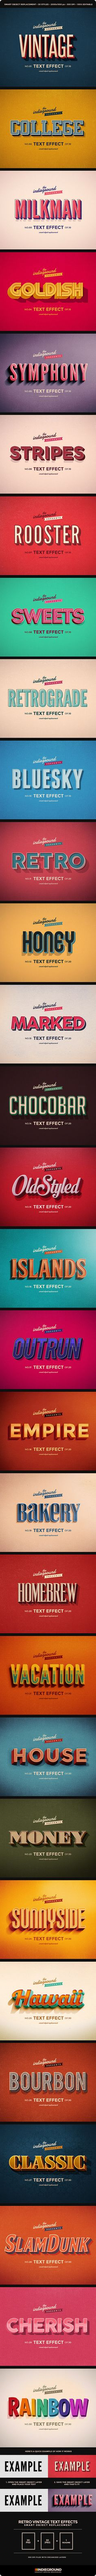 Retro Vintage Text Effects Bundle Vol. 1-3 - Text Effects Actions